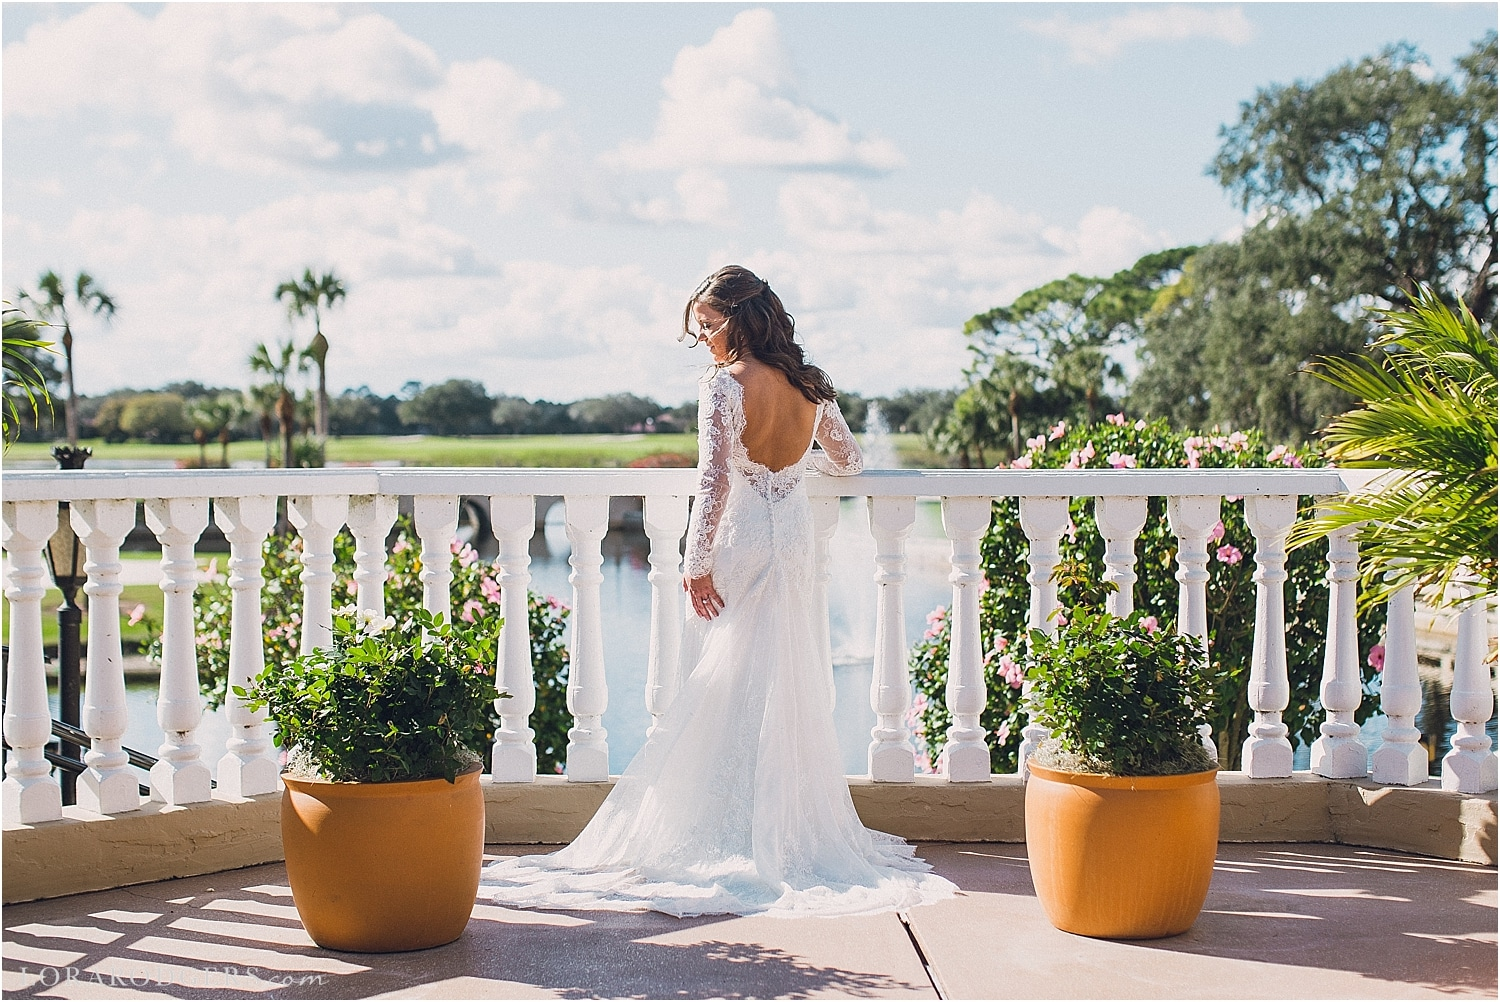 Bride in Plaza de la Fontana in backless longsleeved wedding gown